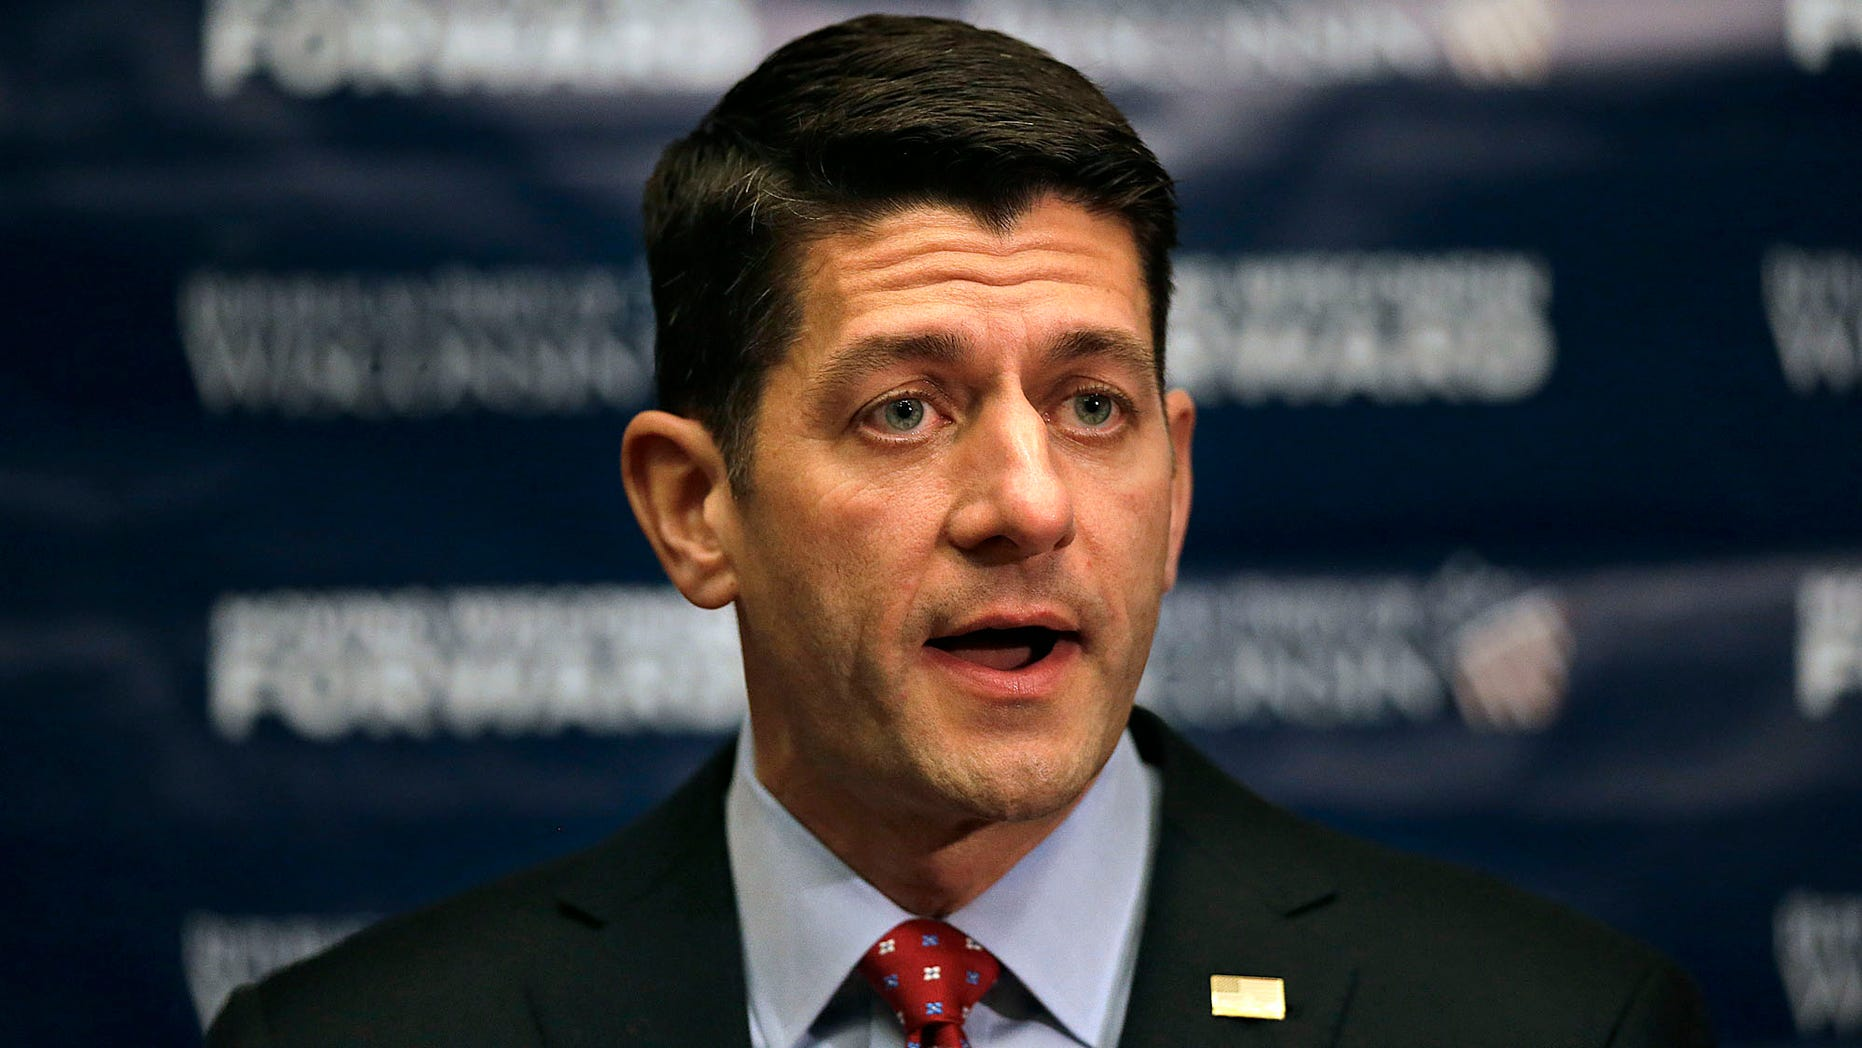 House Speaker Paul Ryan, R-Wis., speaks at a press conference during the Republican Party of Wisconsin State Convention at the KI Convention Center in Green Bay, Wis., on Saturday, May 14, 2016. (Evan Siegle /The Green Bay Press-Gazette via AP) NO SALES; MANDATORY CREDIT